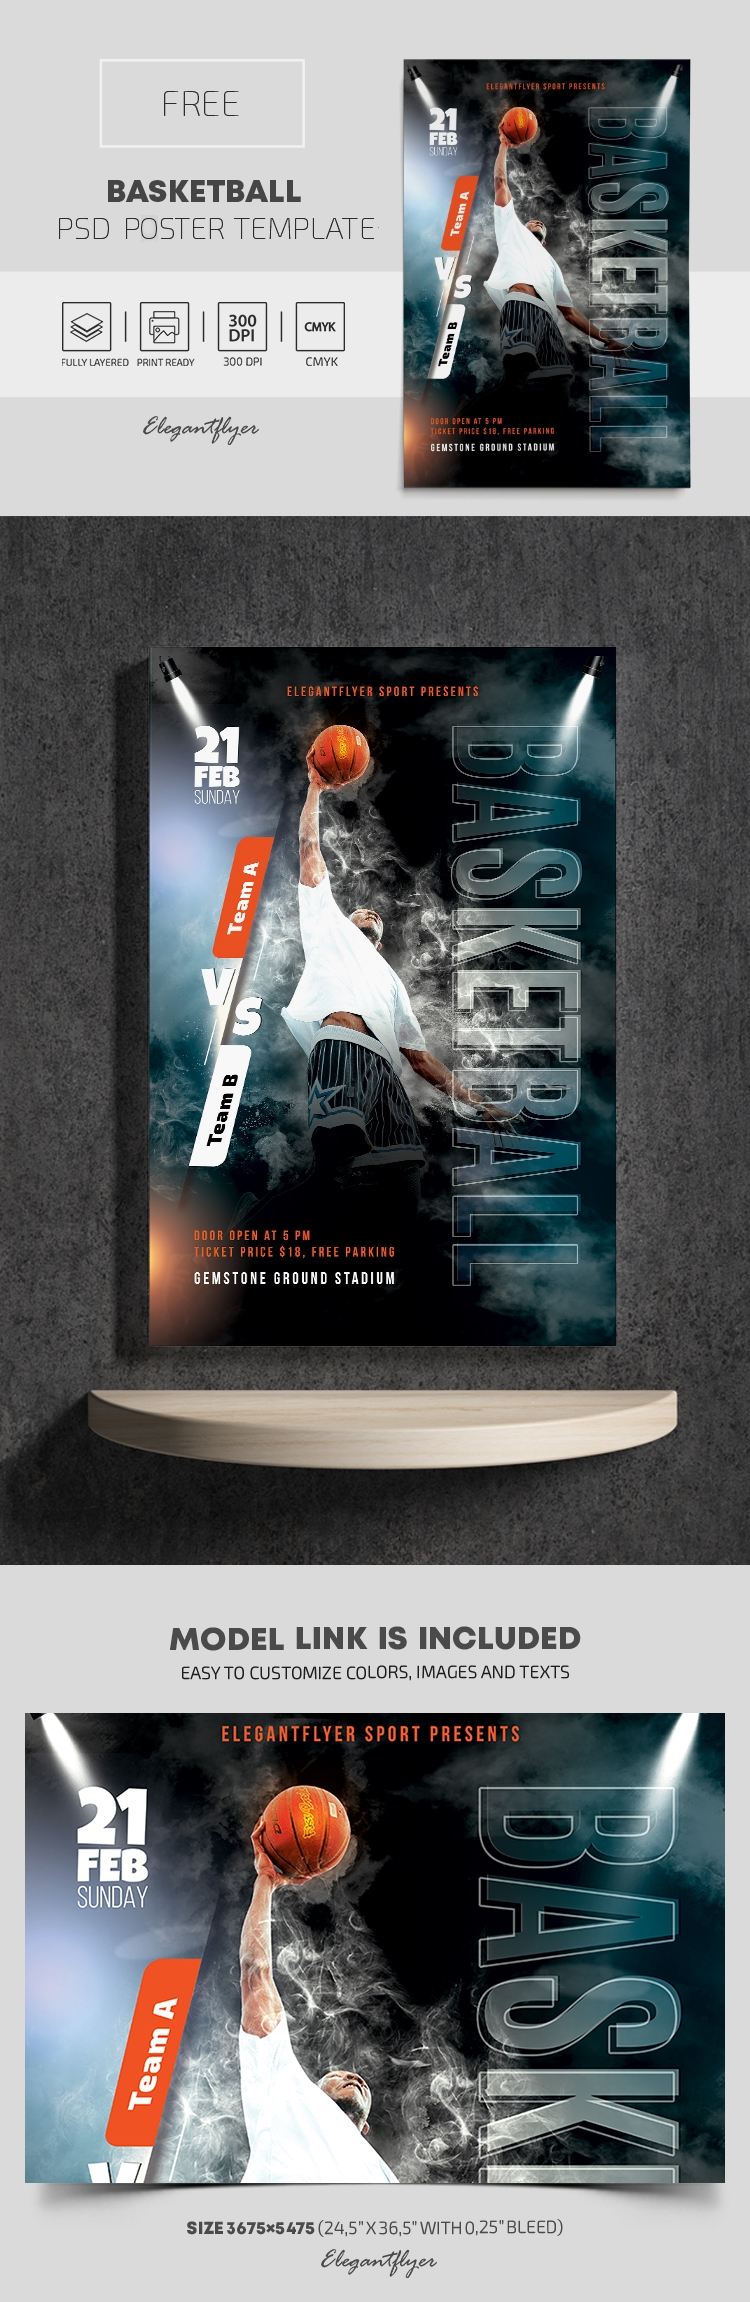 Basketball – Free PSD Poster Template